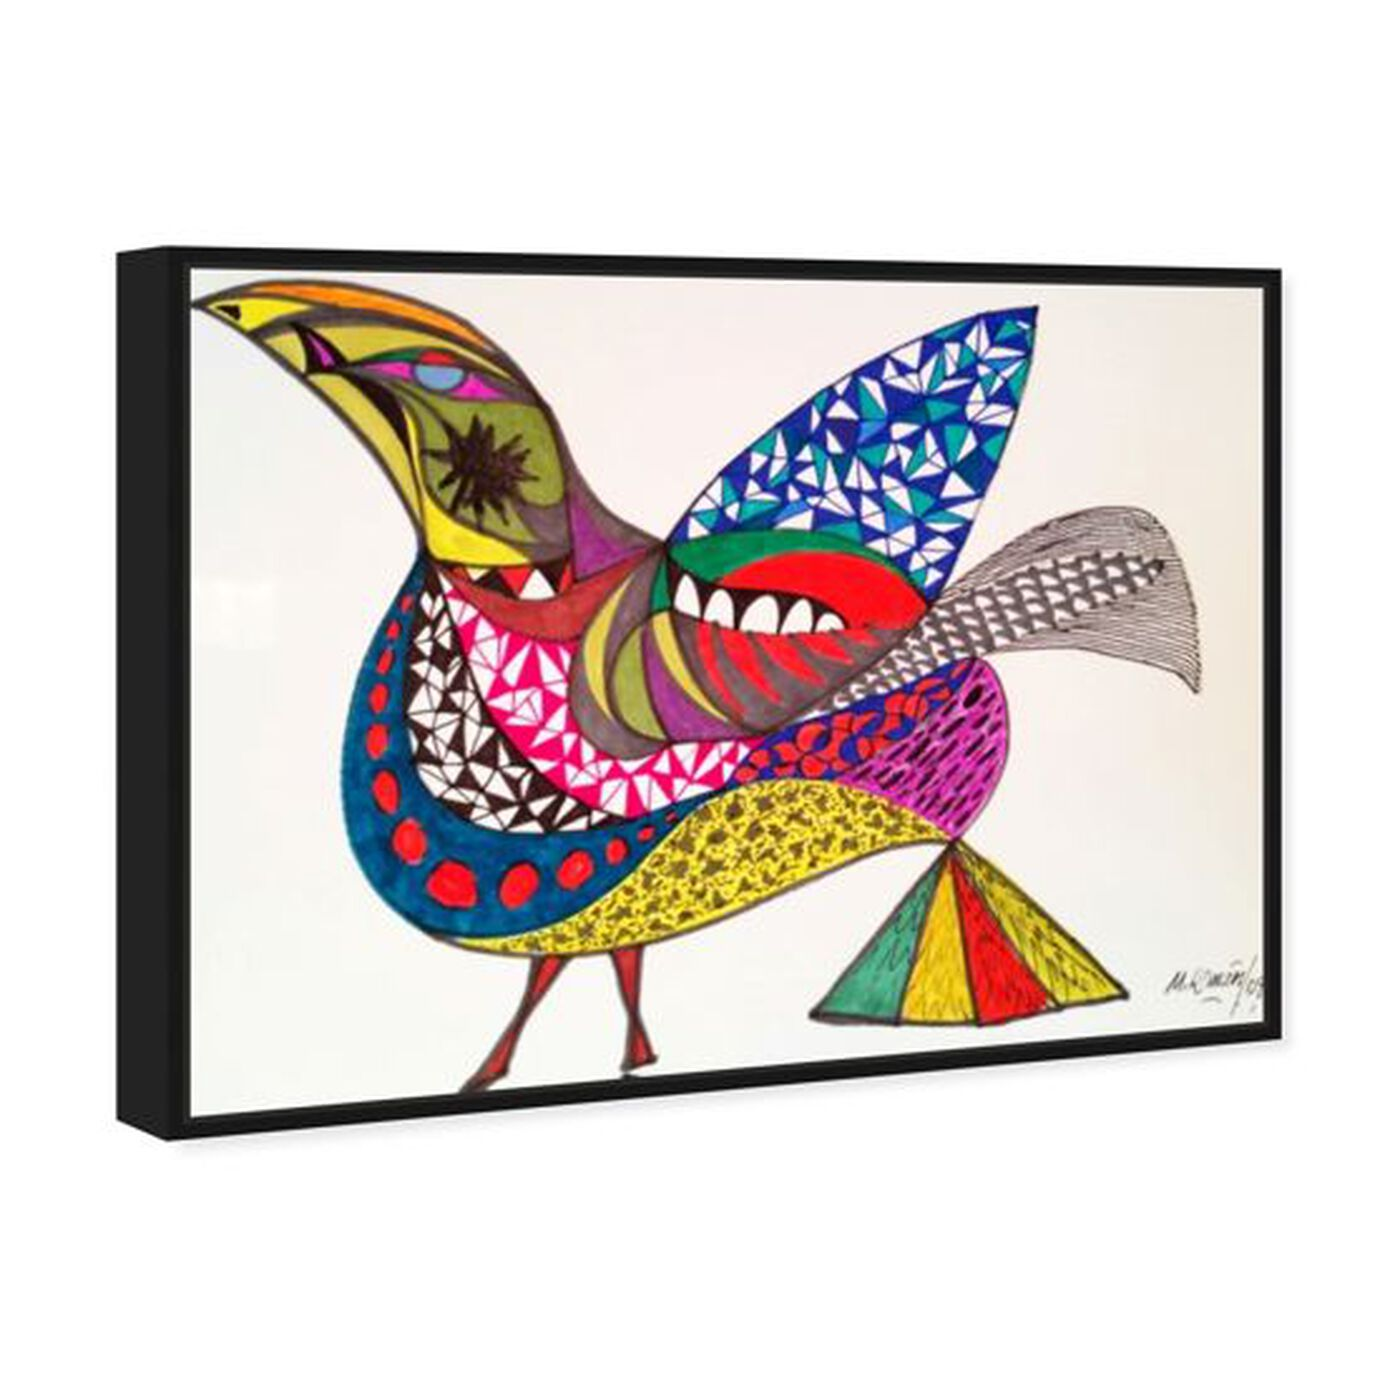 Angled view of Bird featuring animals and birds art.